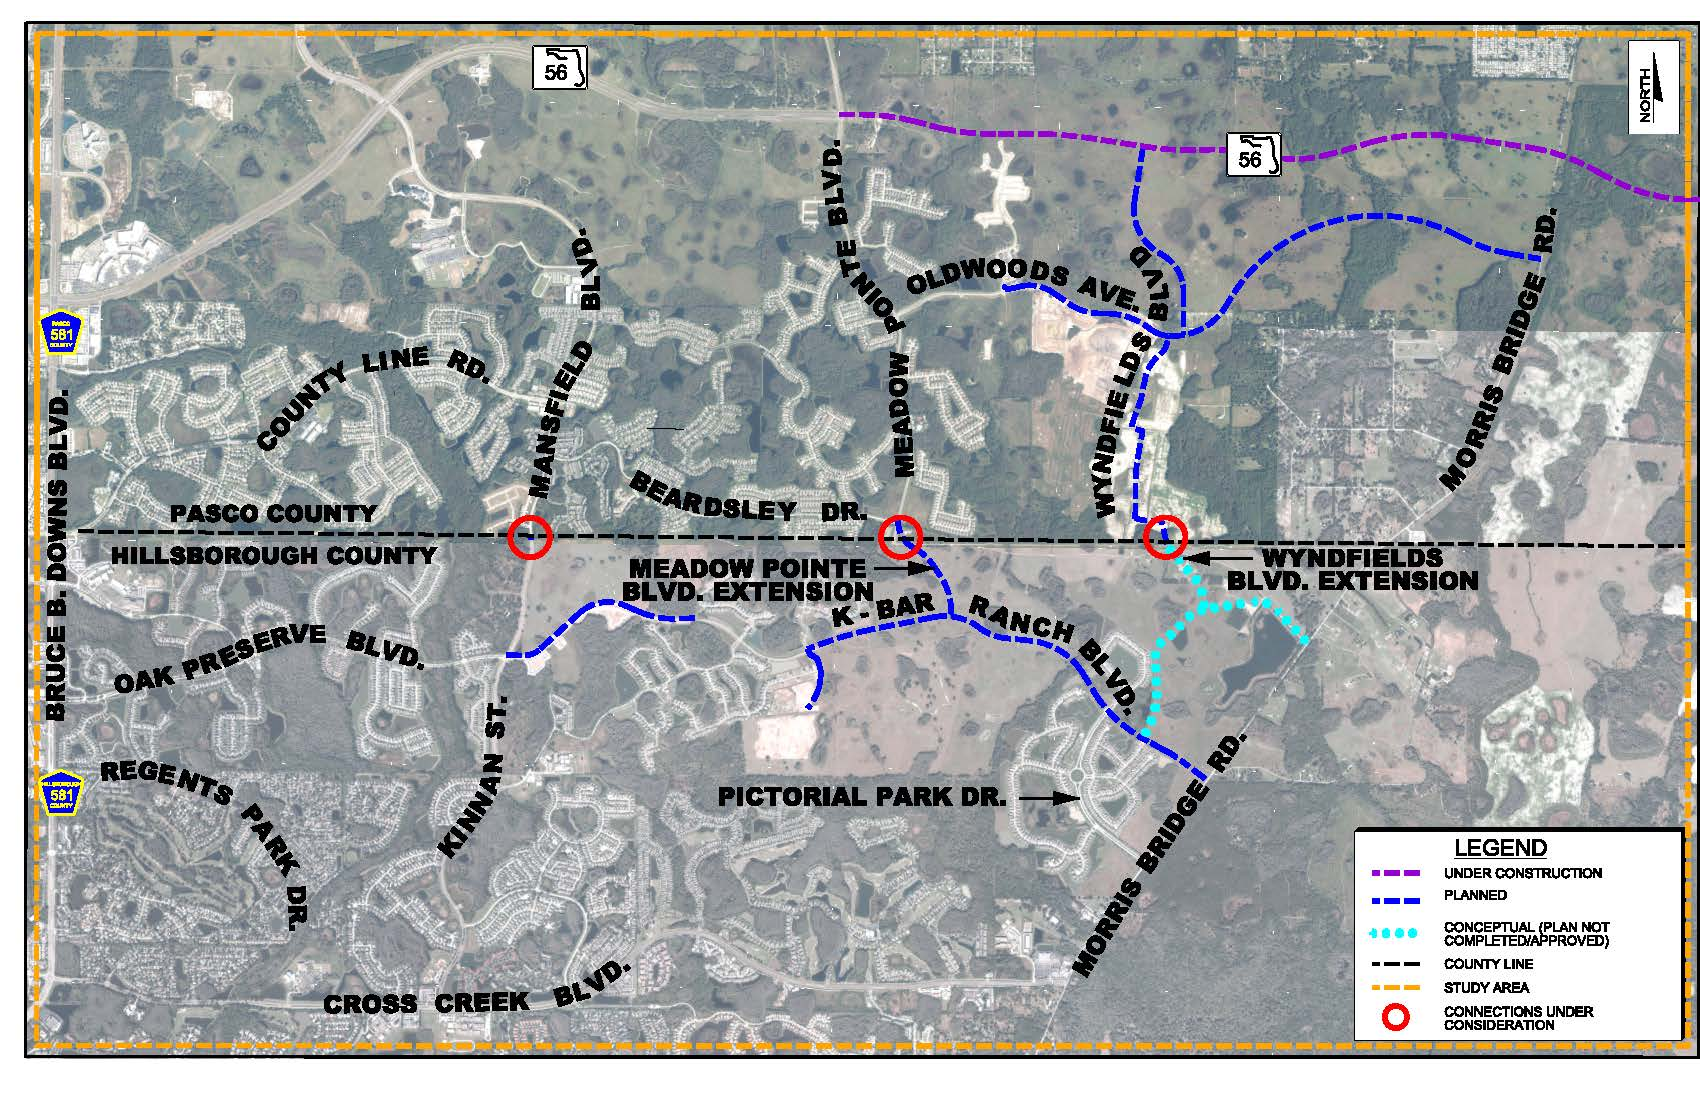 Final Wesley Chapel Study Area Map